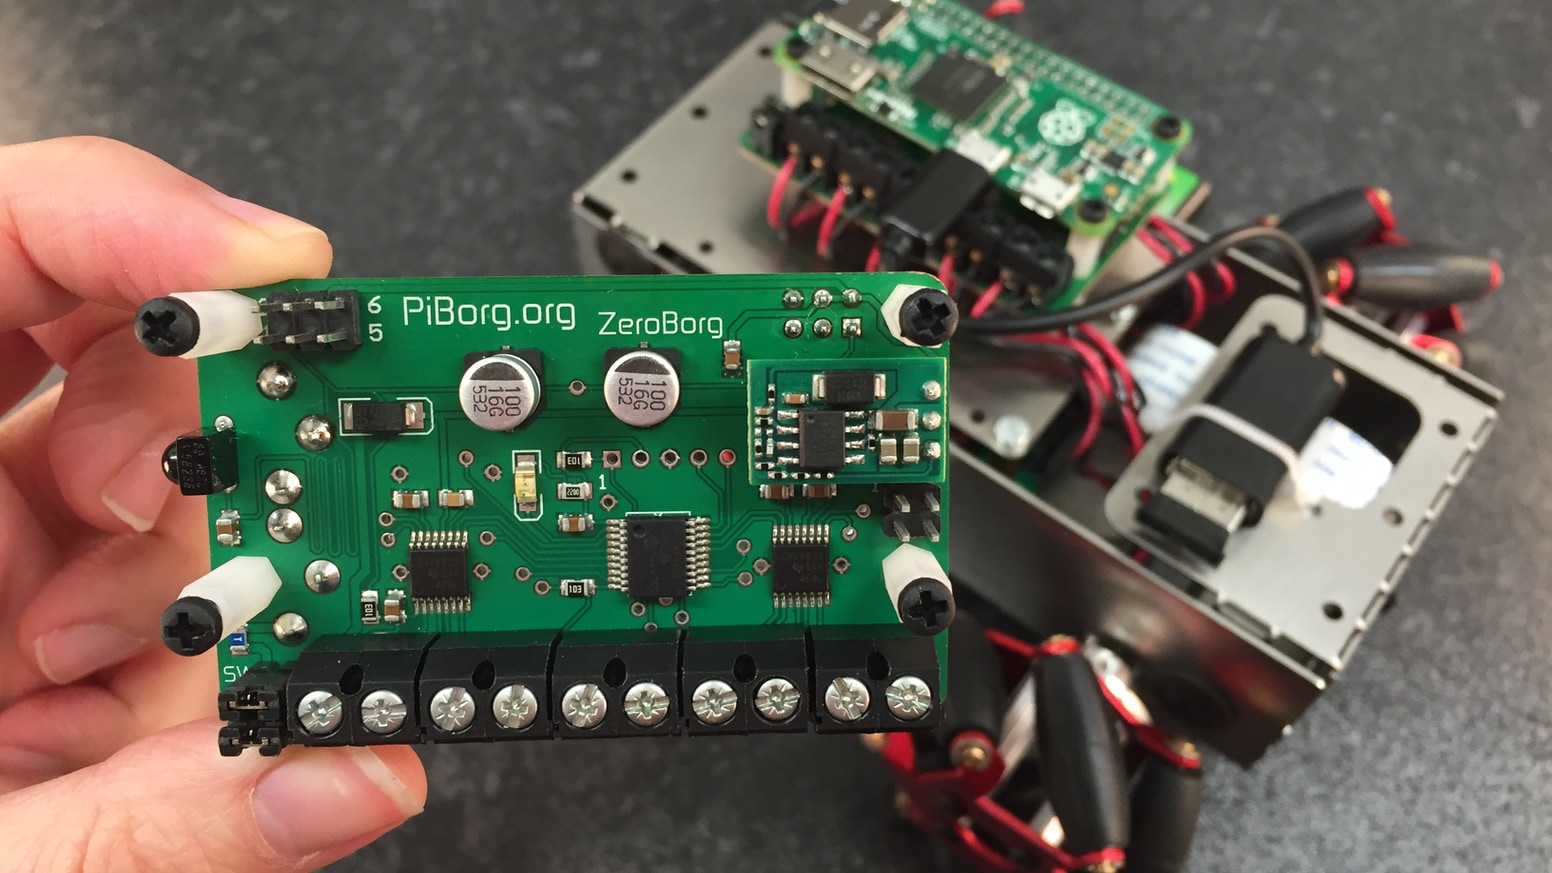 ZeroBorg; a brand new small but powerful motor controller and sensor board for the Raspberry Pi Zero. Build tiny but awesome robots!